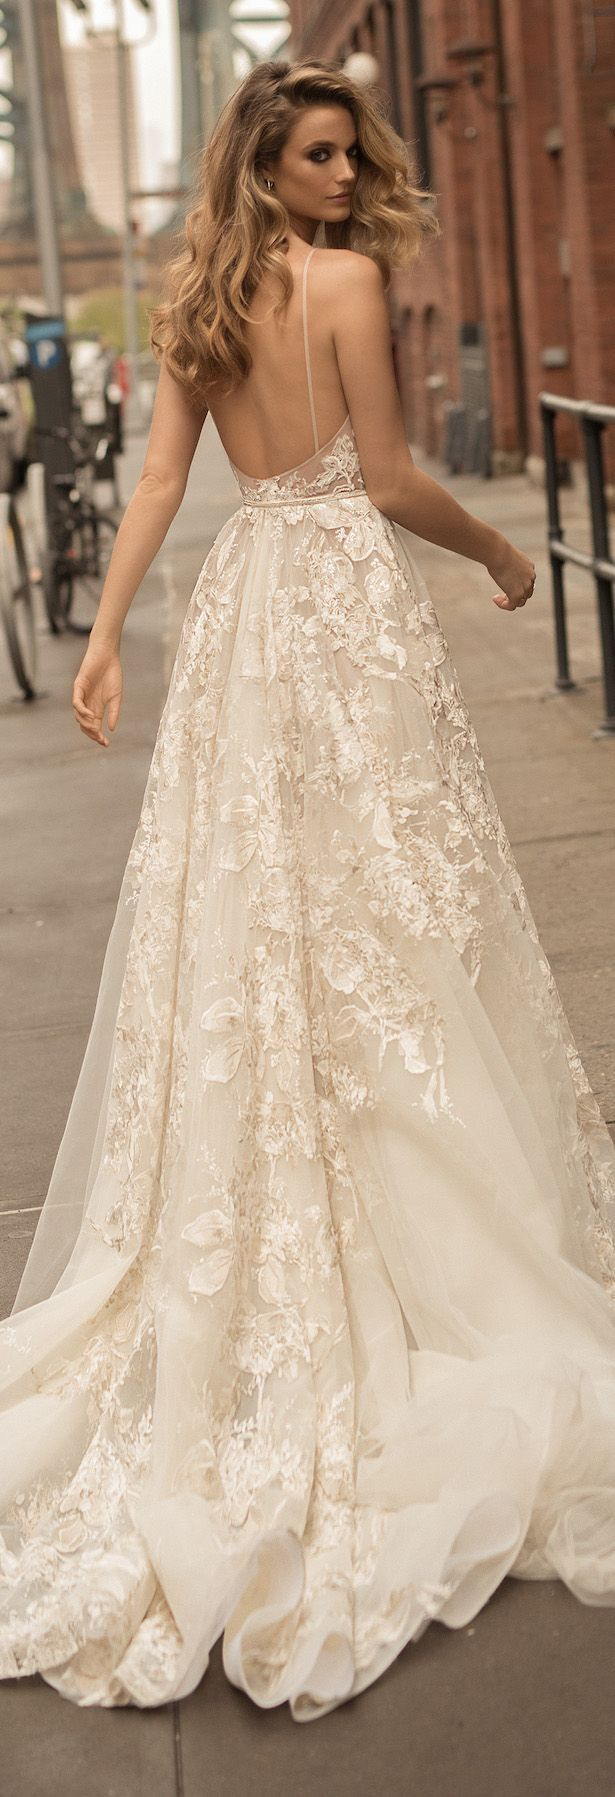 Vintage bare back wedding gown casamento pinterest gowns